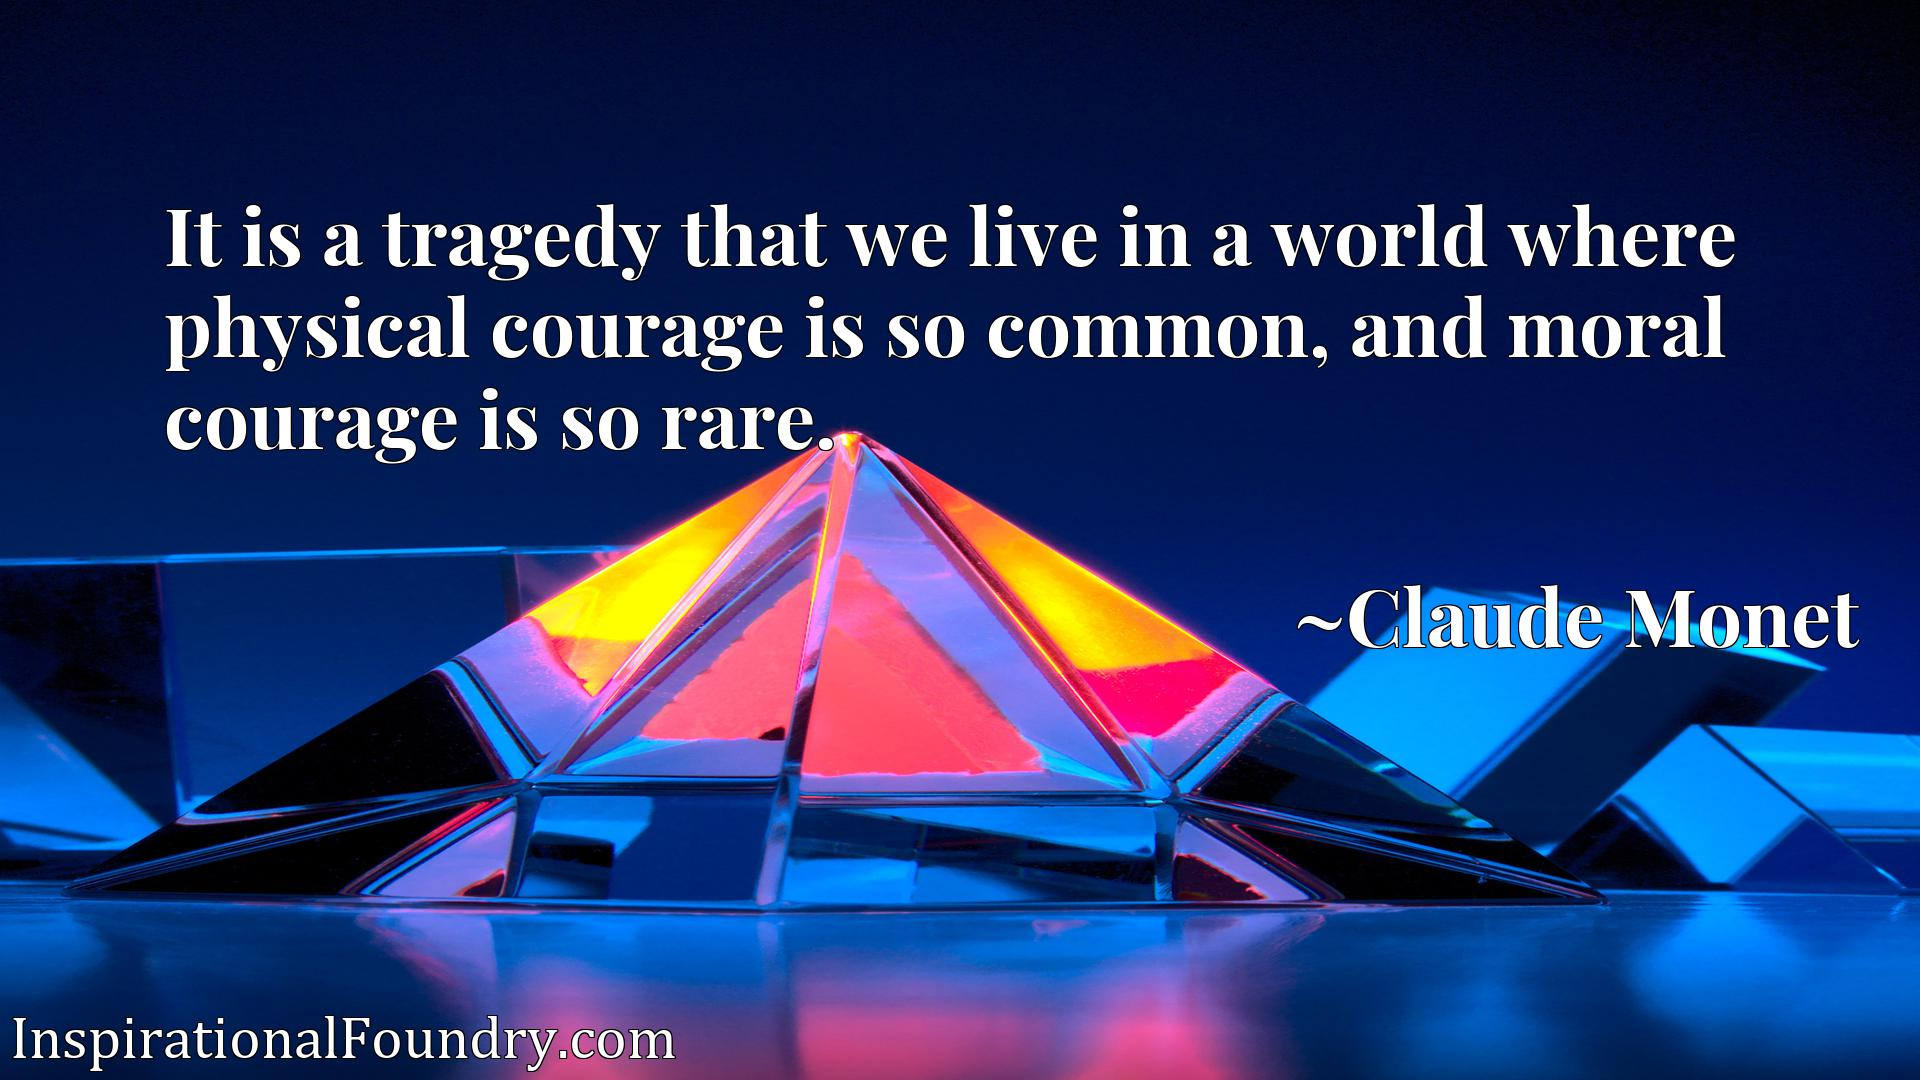 It is a tragedy that we live in a world where physical courage is so common, and moral courage is so rare.